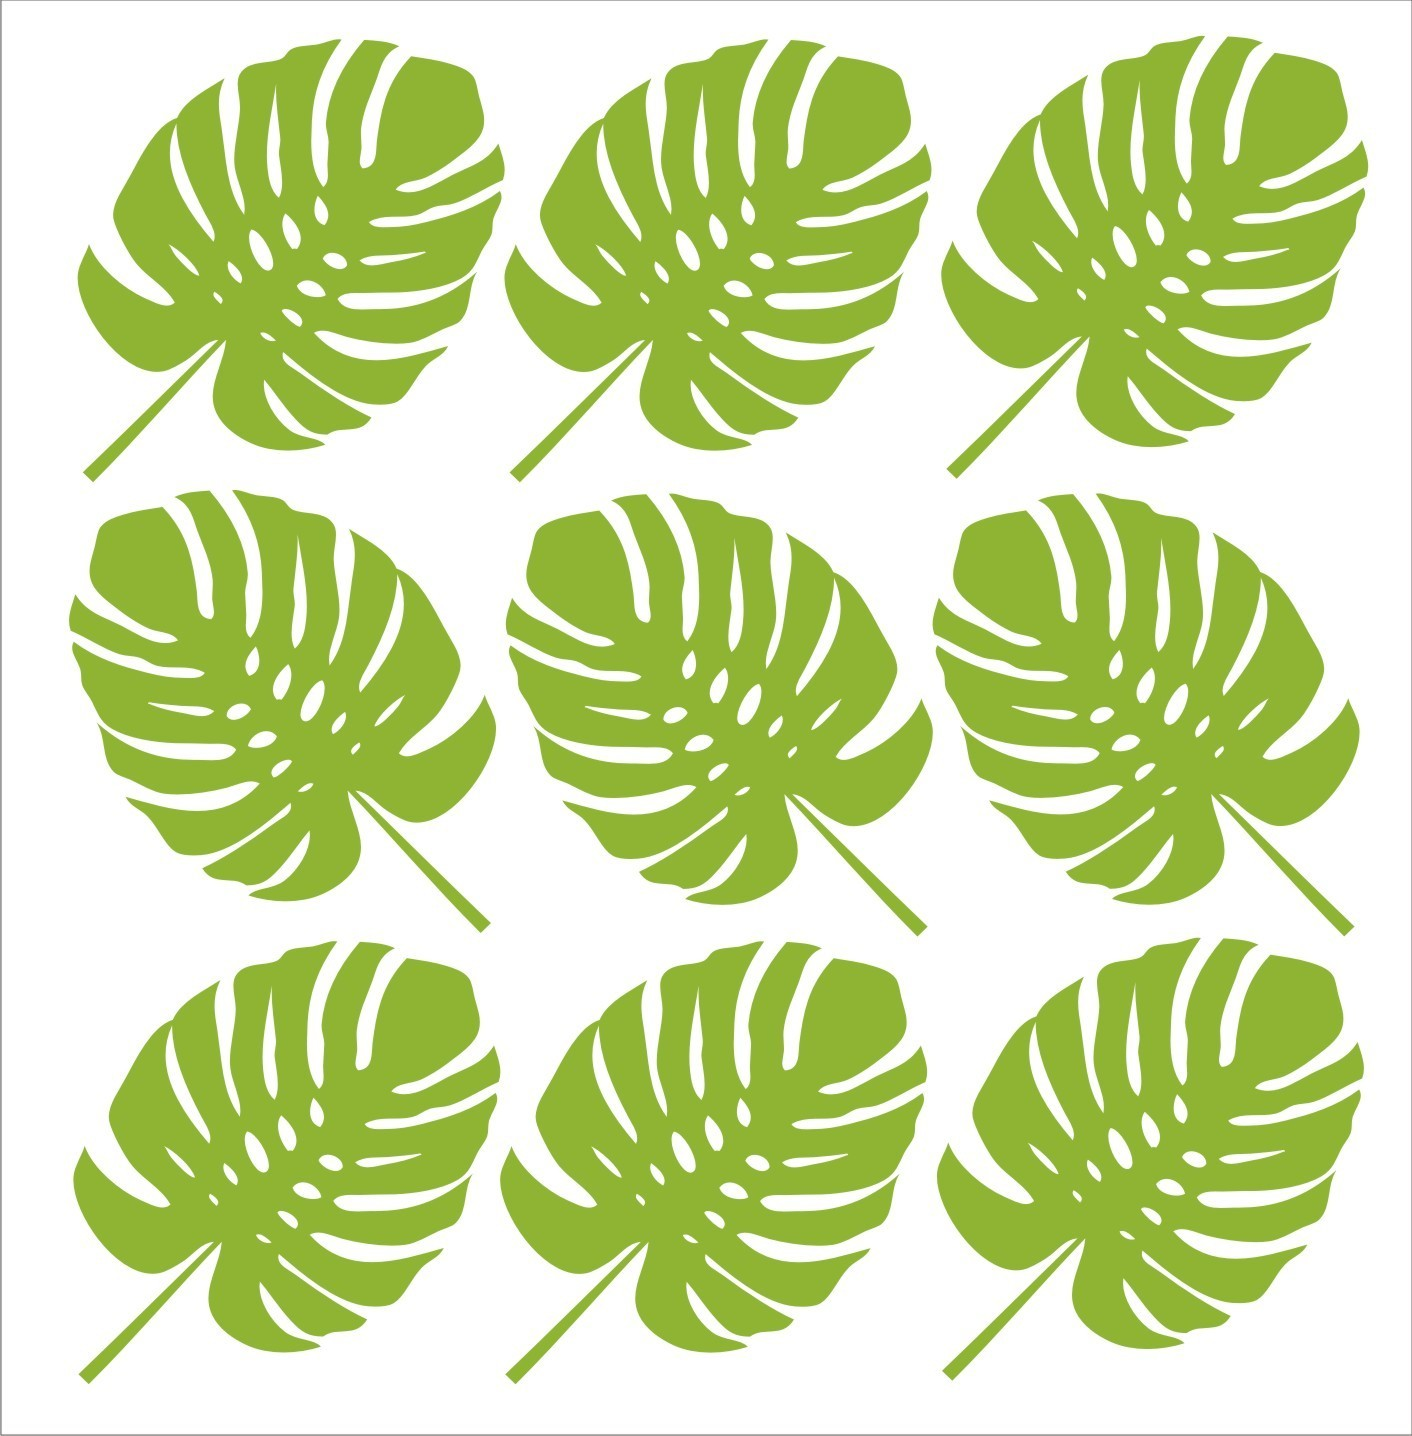 Tropical foliage clipart - Clipground